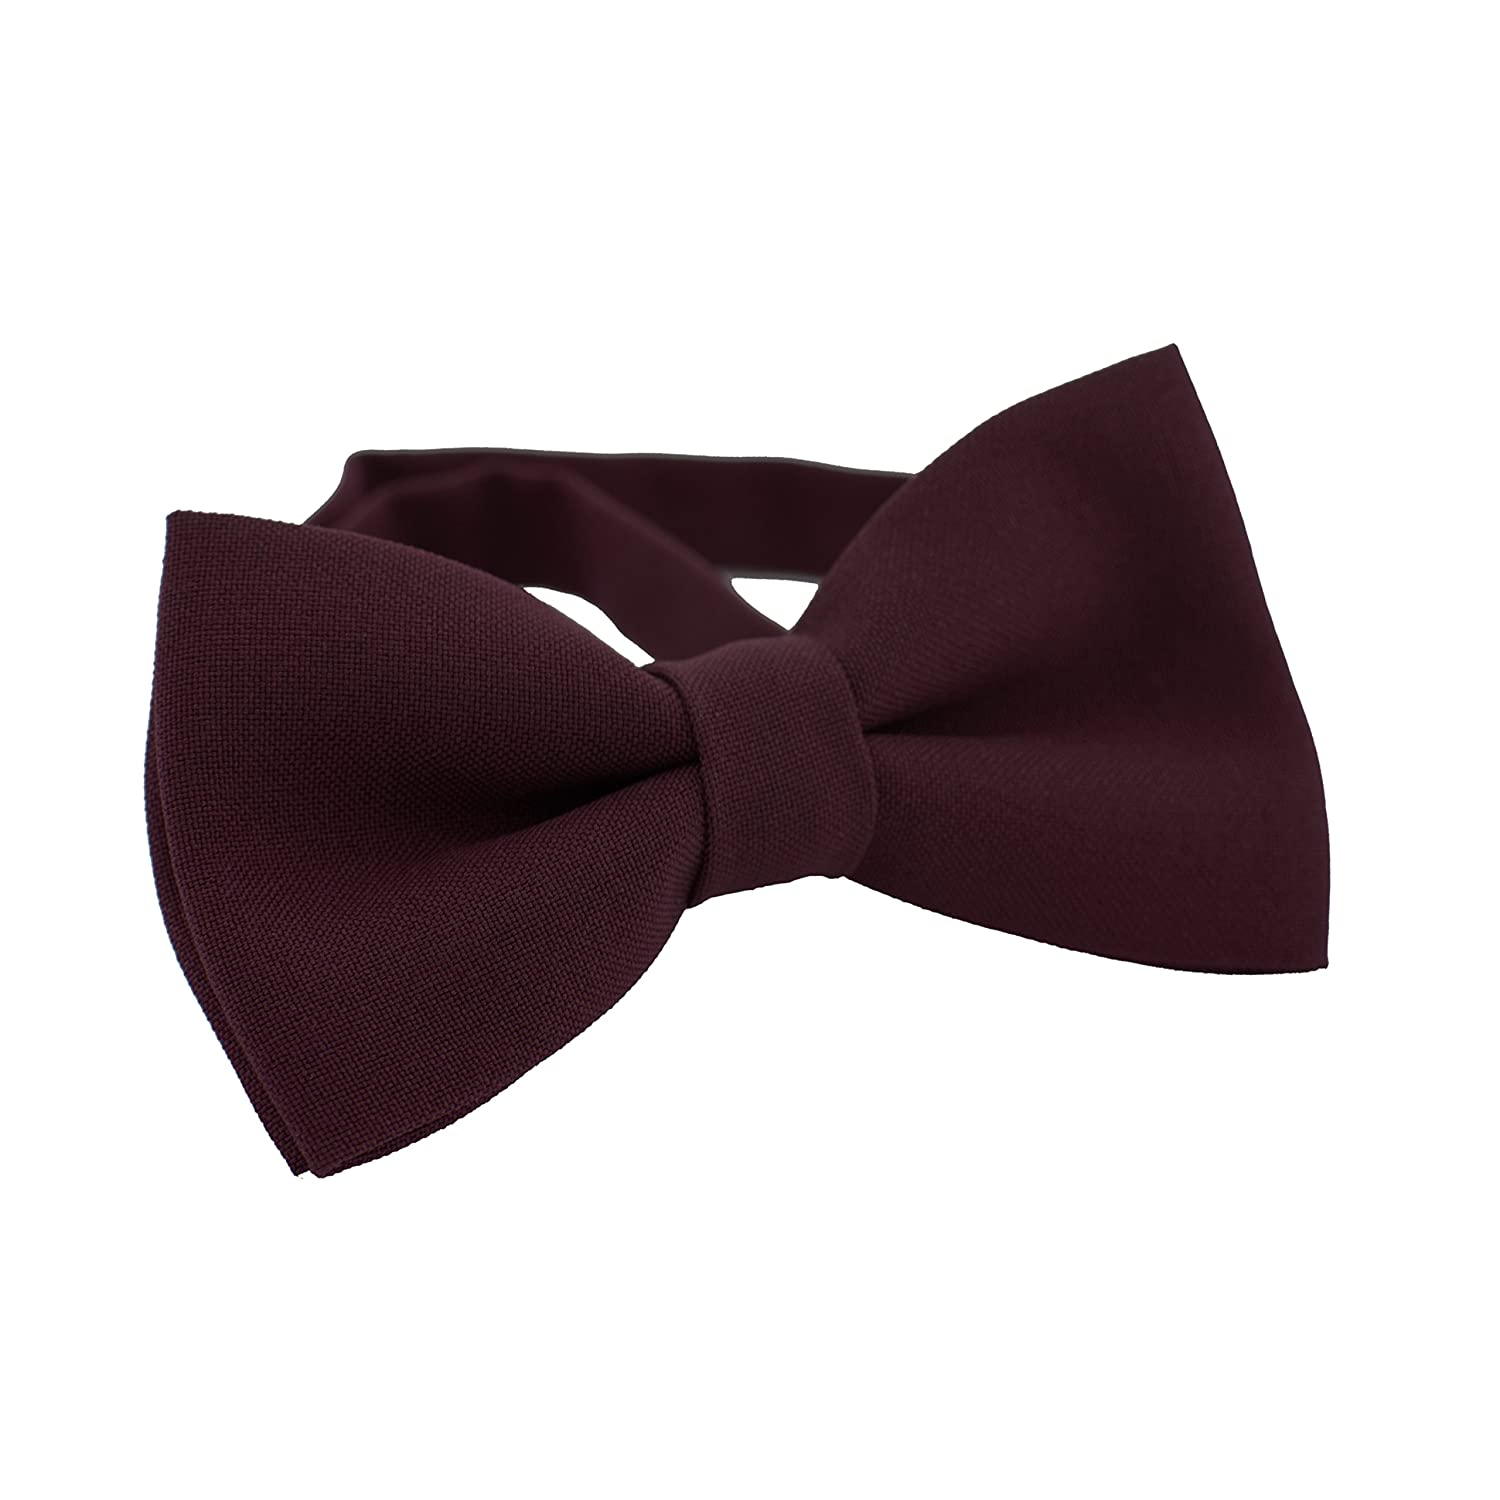 Classic Pre-Tied Bow Tie Formal Solid Tuxedo, by Bow Tie House (Small, Dark Purple) 09219